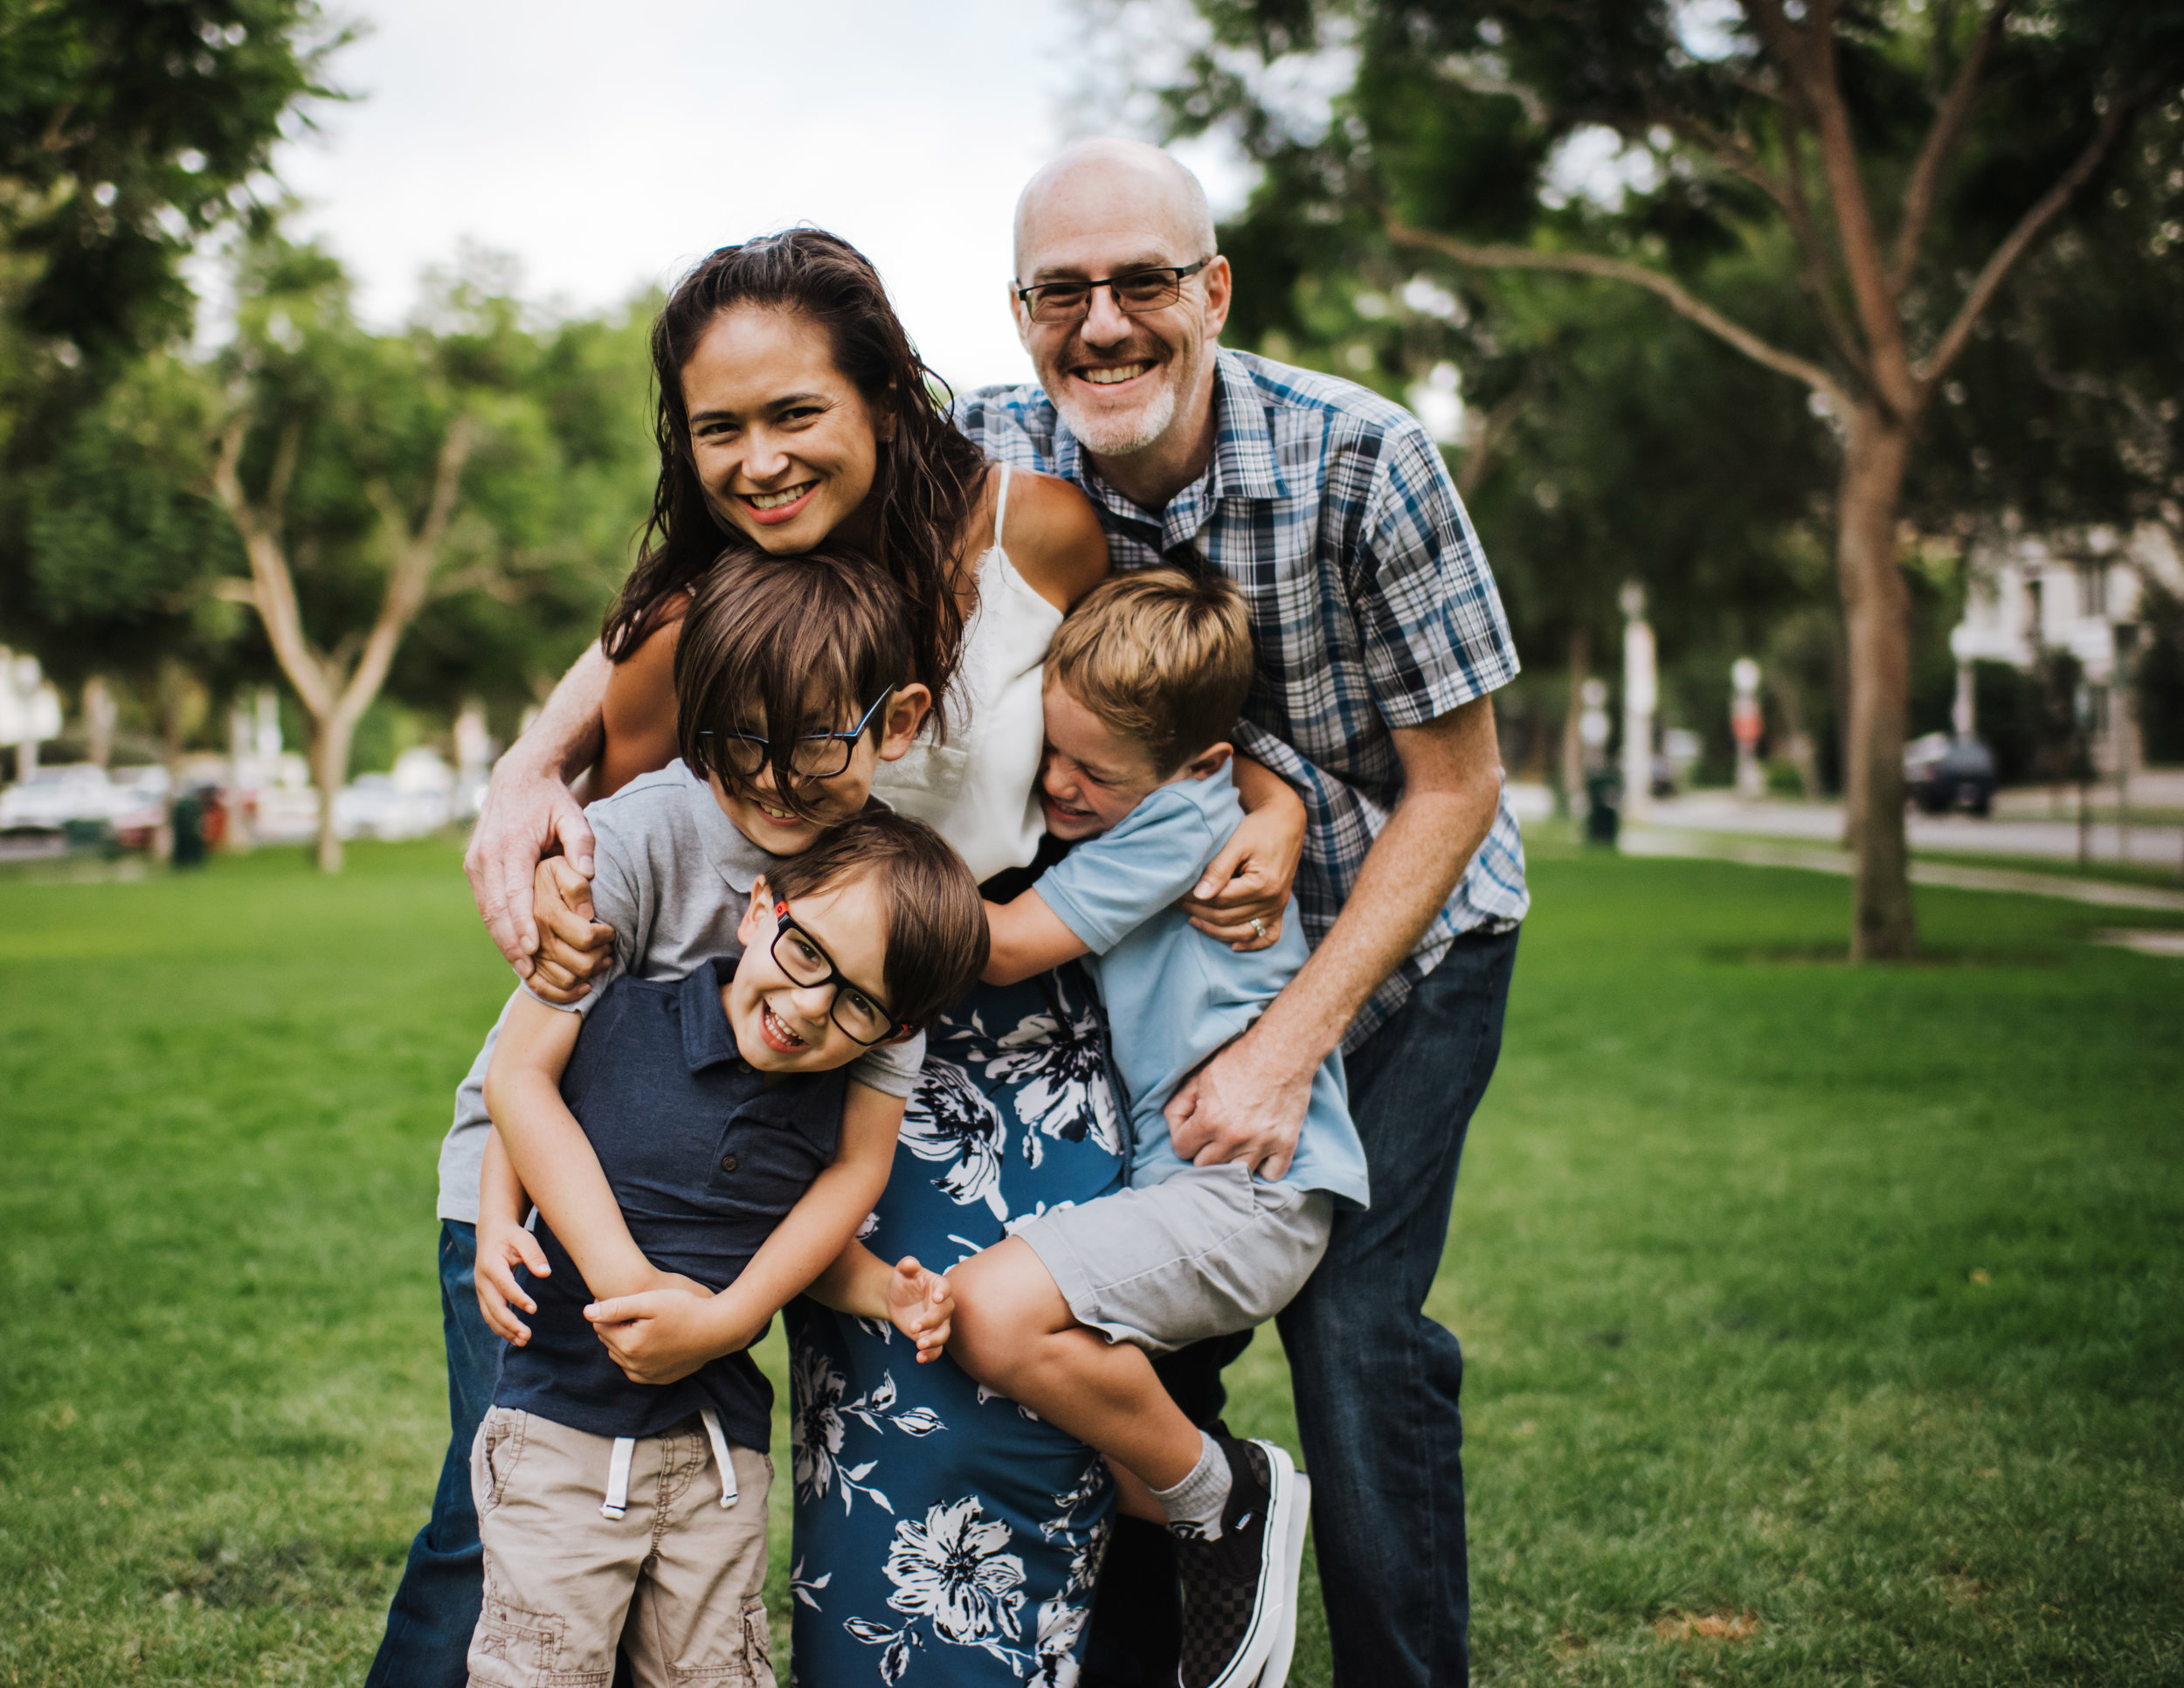 Family Session - 40 minutes, 20 photo gallery, All photographs in gallery as a digital download— $400